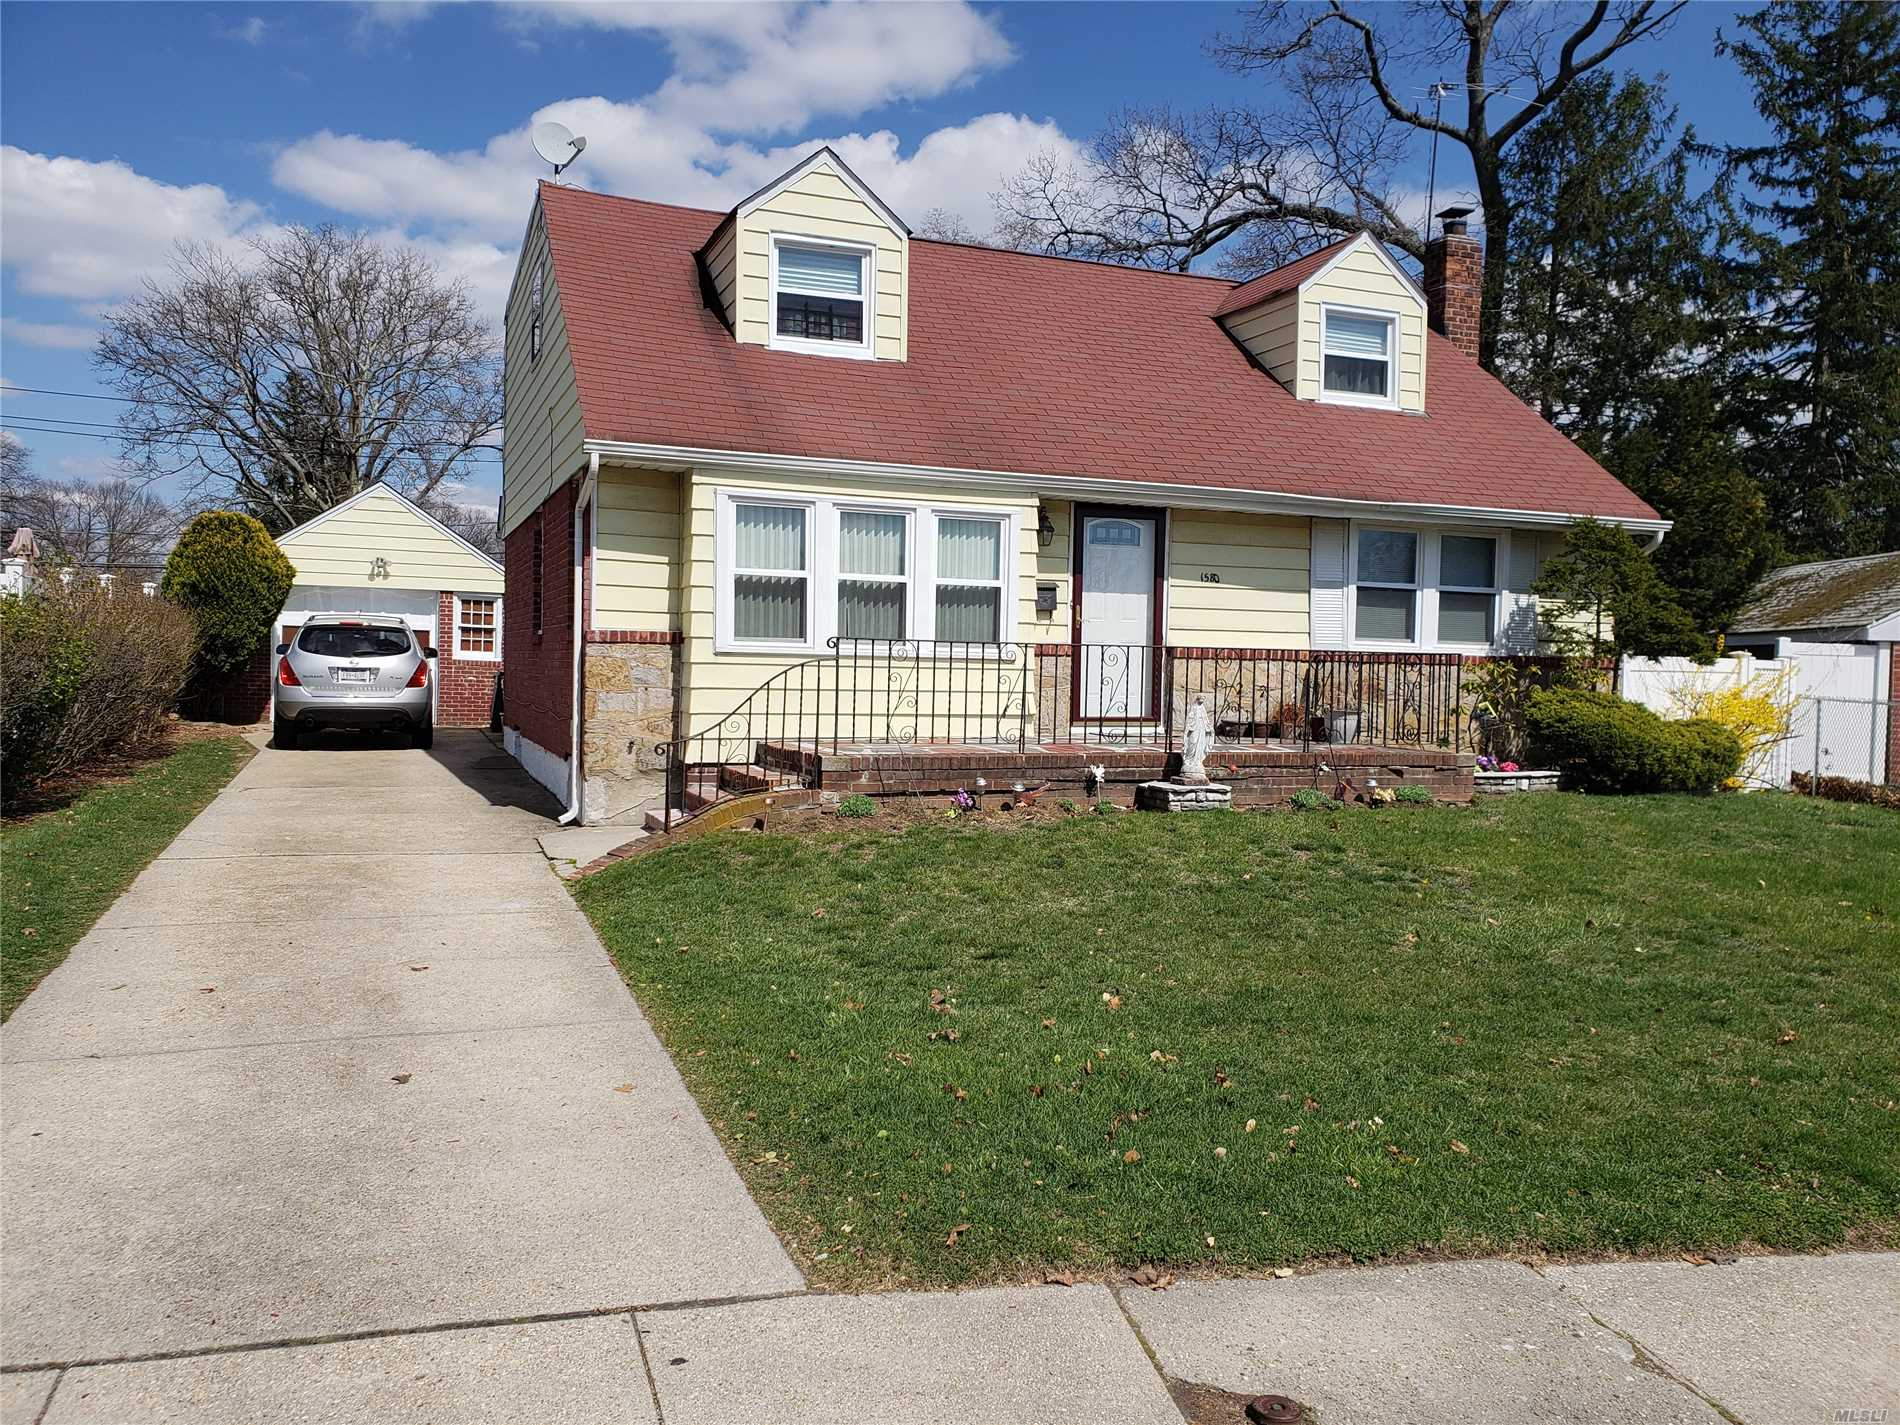 Very Spacious And Expanded Cape With Rear Dormer! Huge Yard, 1 Car Gar Det, Four Bedrooms And Two Baths Above Grade With 2 Additional Bedrooms And Bathroom In The Full Finished Basement. Lots Of Space And Great Layout! Must See Backyard With Room For A Pool!